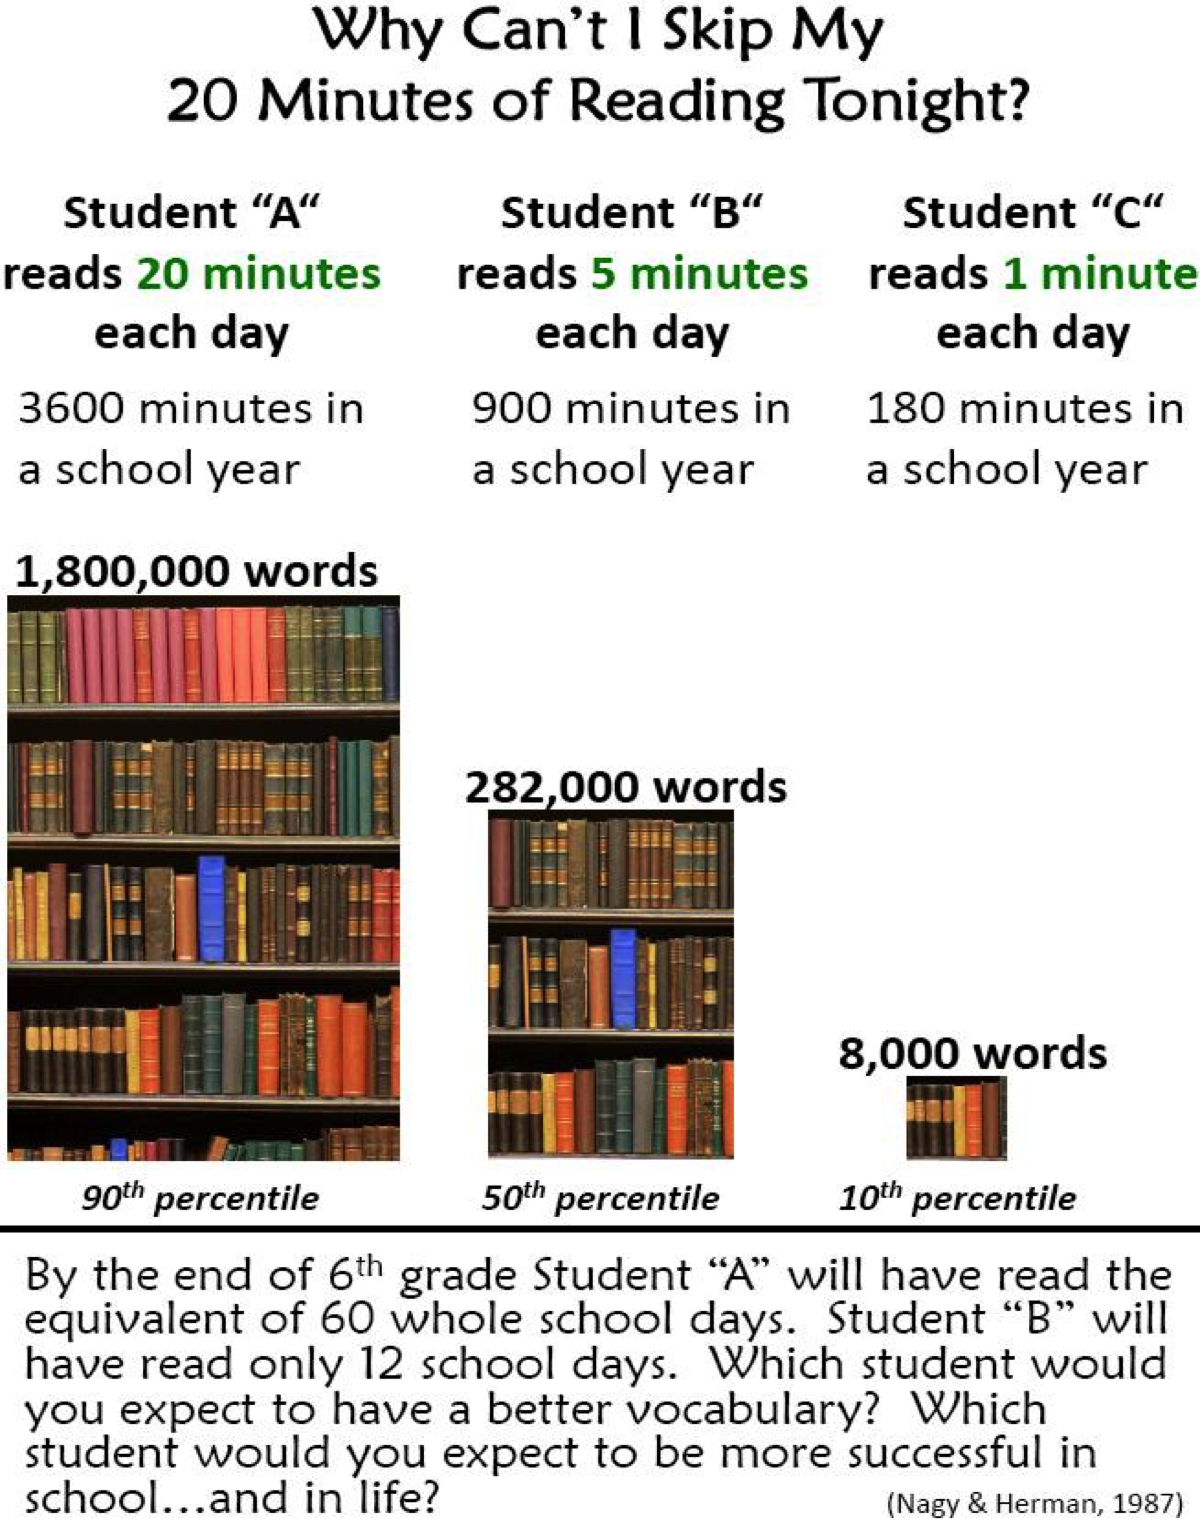 Image result for why can't i skip my 20 minutes of reading